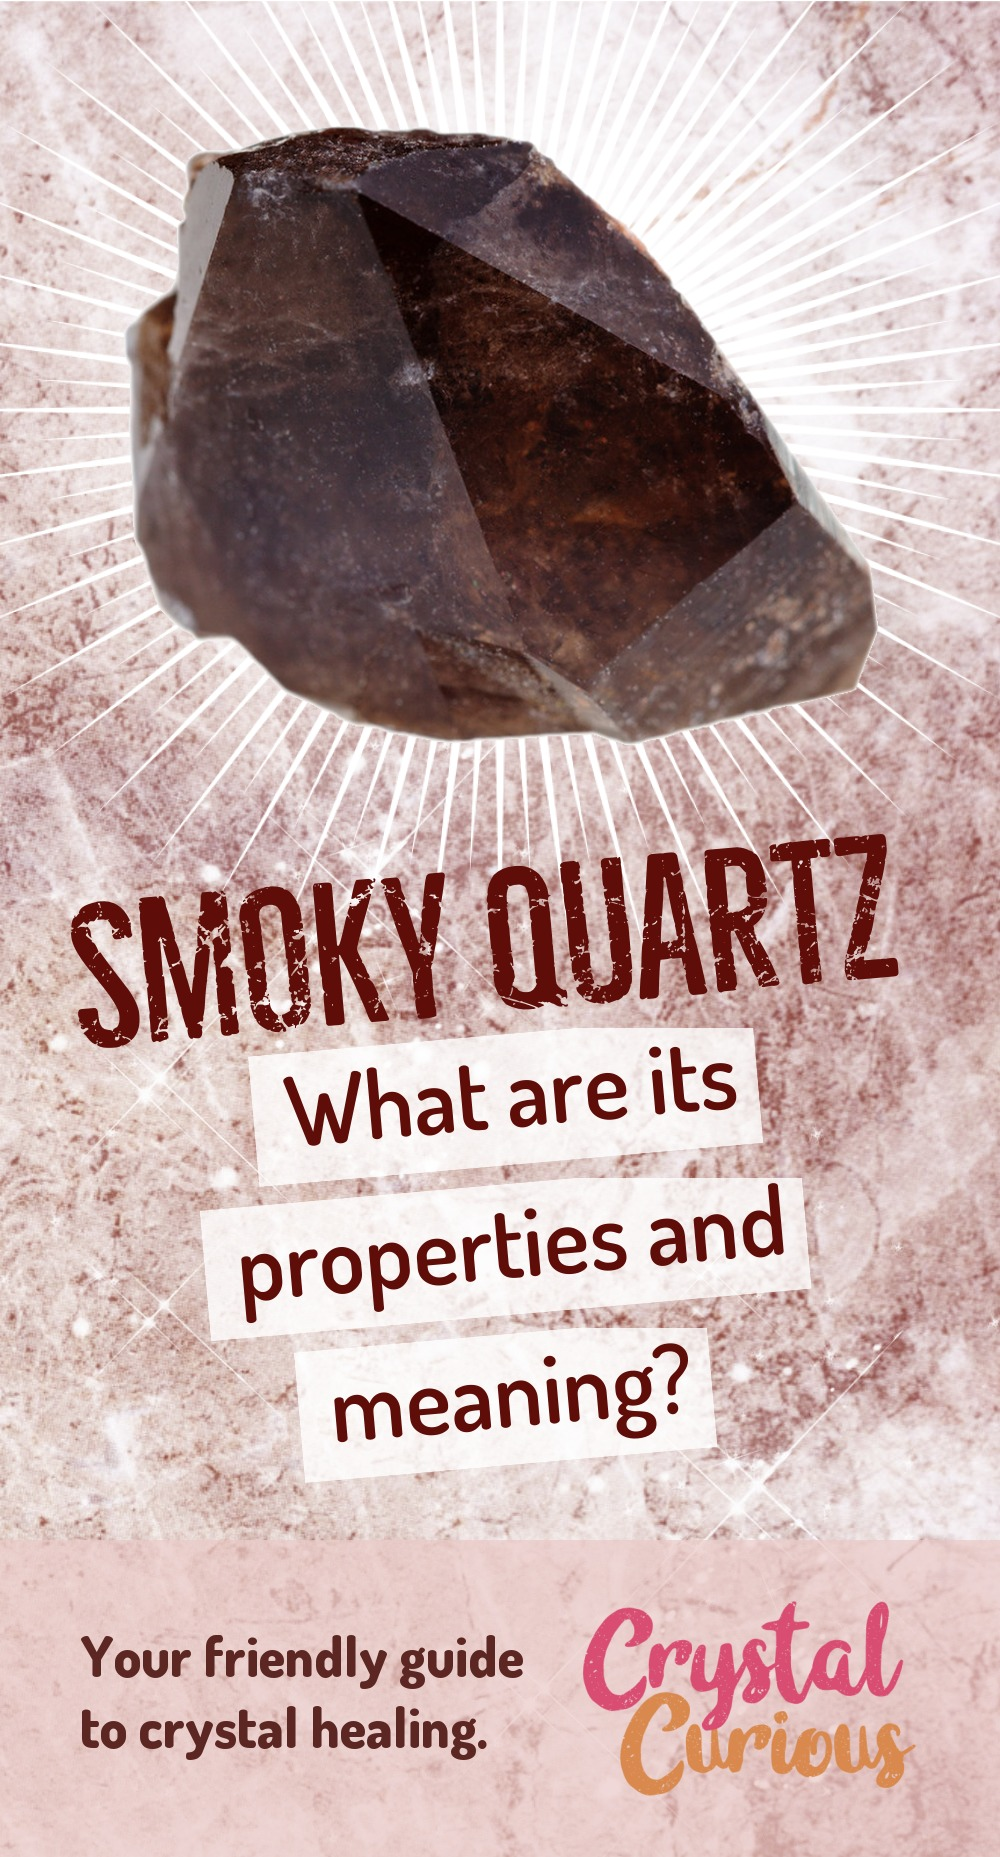 Smoky Quartz Meaning & Healing Properties. Smoky quartz is one of the best grounding stones. It can help you settle into your body and feel like you belong here on planet Earth. Learn  all the crystal & gemstone properties and crystal healing for beginners at CrystalCurious.com. Energy healing, chakra stones, positive energy & vibrations, crystal therapy, crystal meanings. #crystals #crystalhealing #newage  #positiveenergy  #gemstones #energyhealing  #crystalcurious